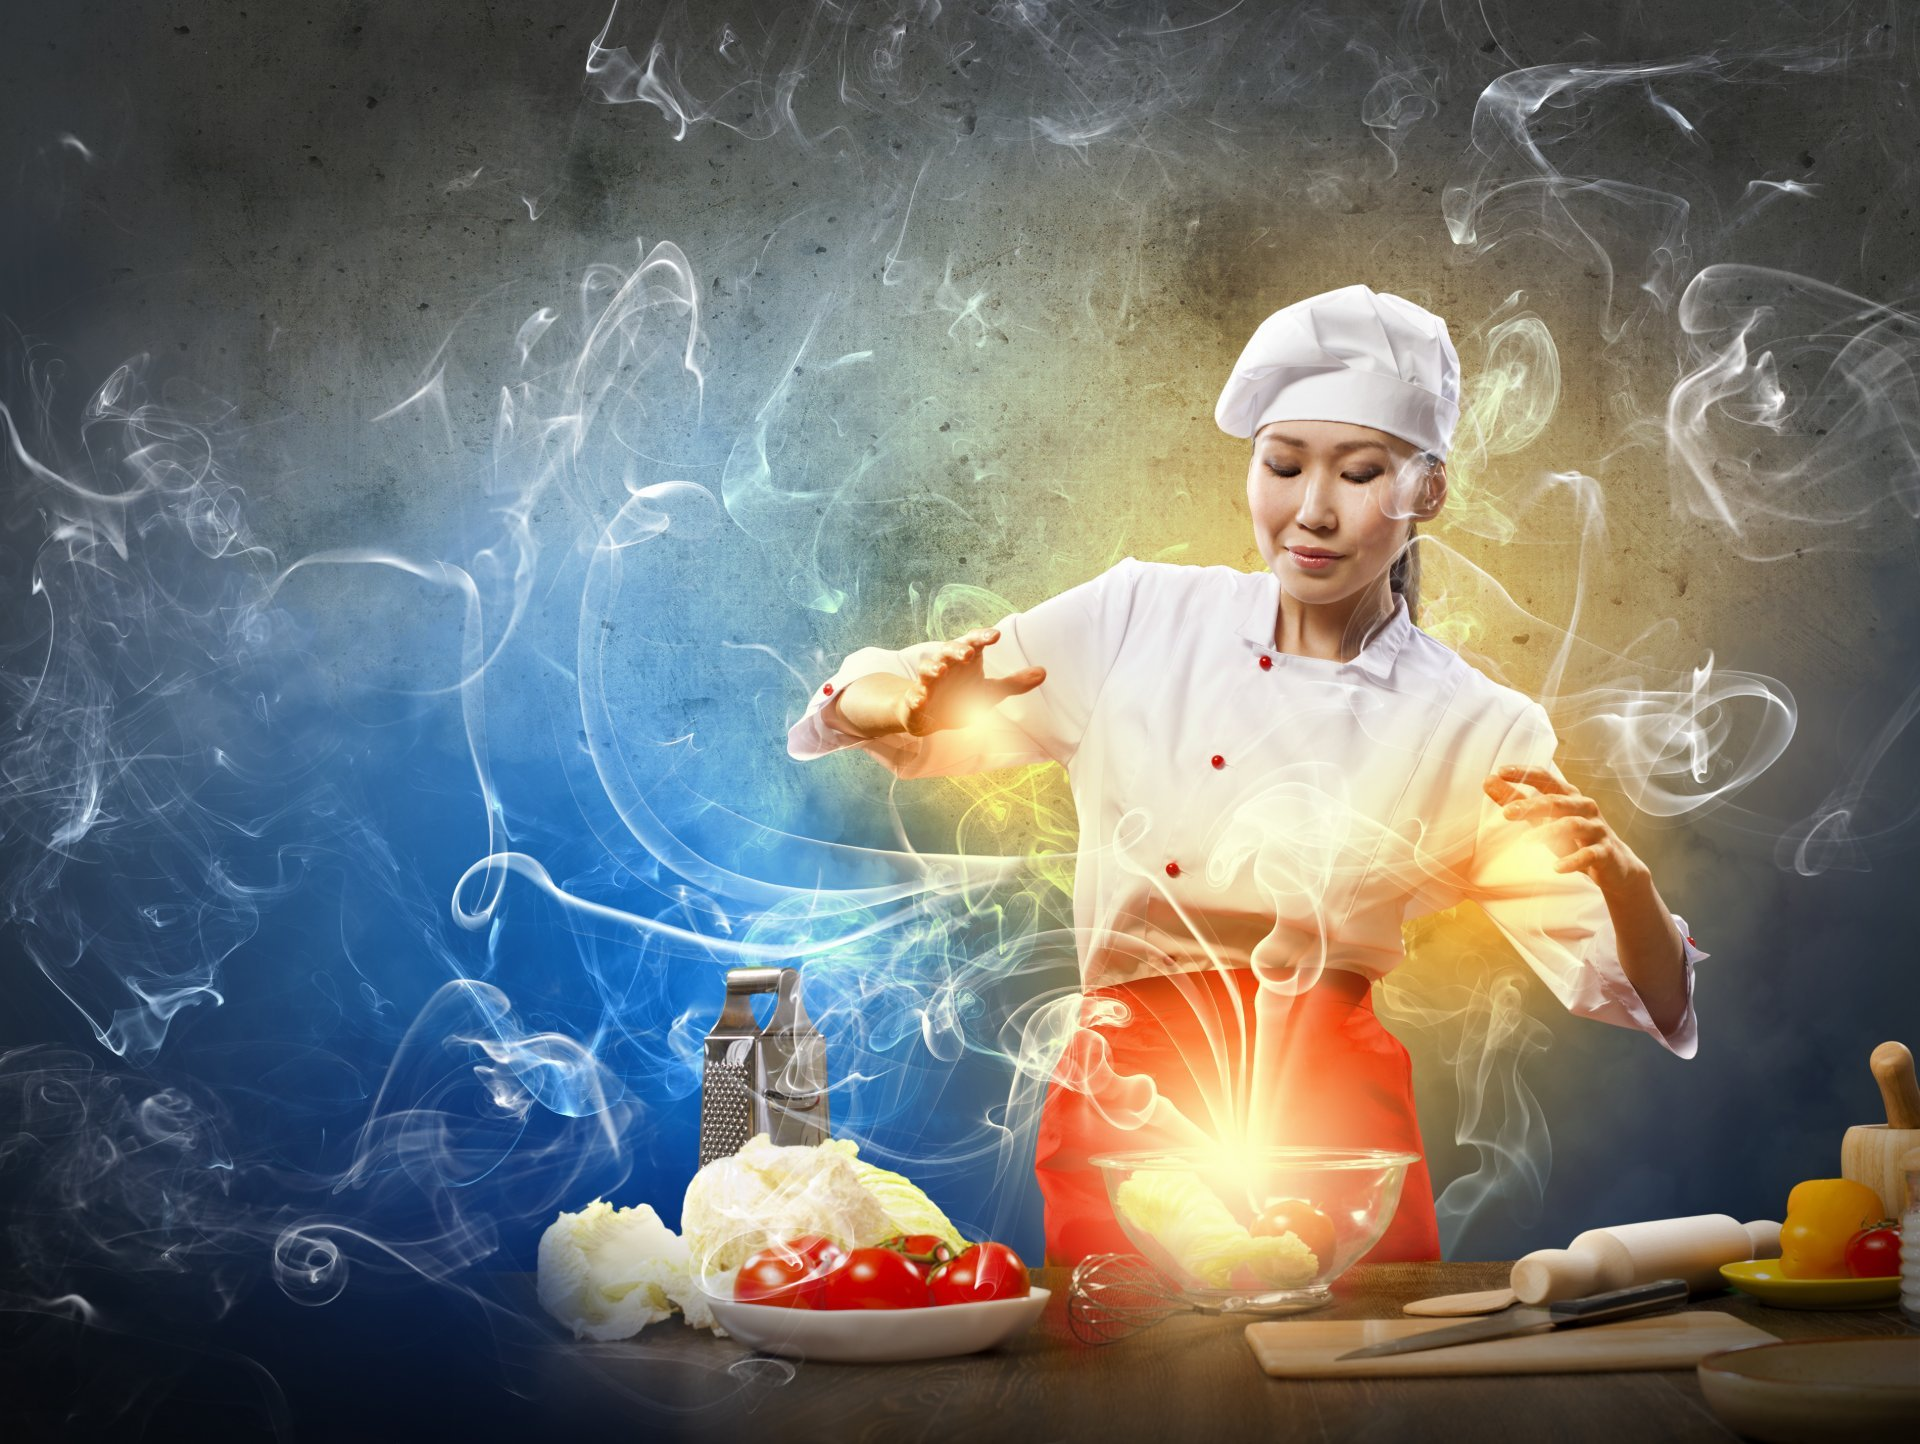 creative cook girl asian food smoke vegetables cabbage grater tomatoes ...